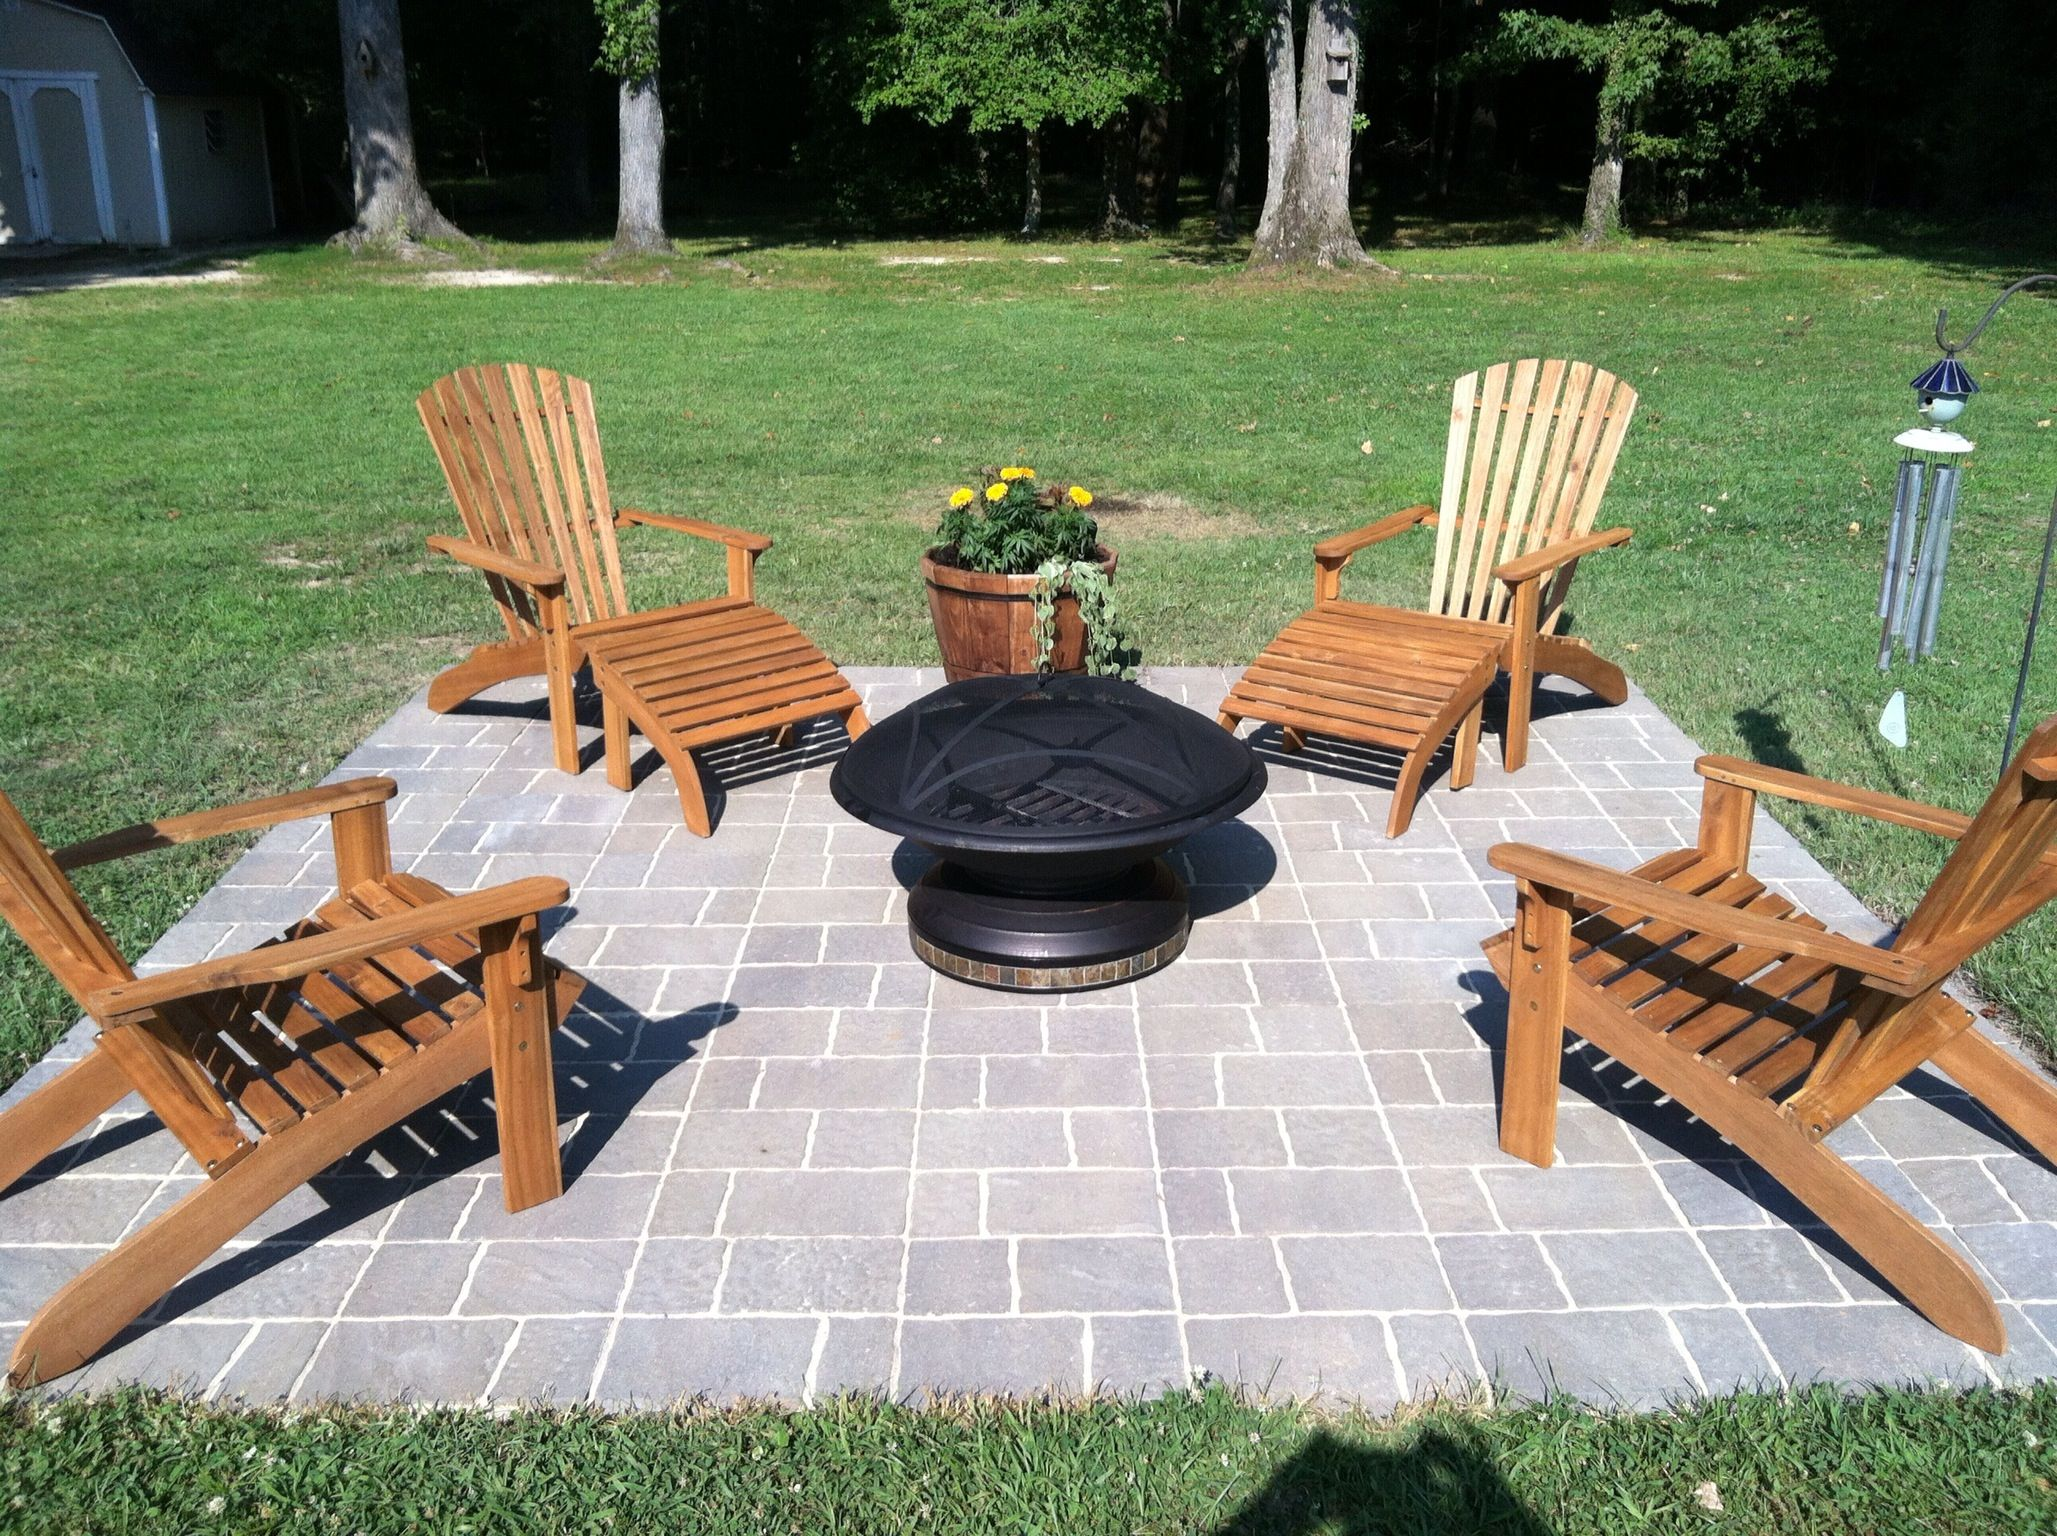 Our New 12x12 Paver Patio Space Completed This Weekend With Fire Pit And New Wooden Adirondack Chairs Amp Planter F Patio Pavers Backyard Fire Pit Backyard